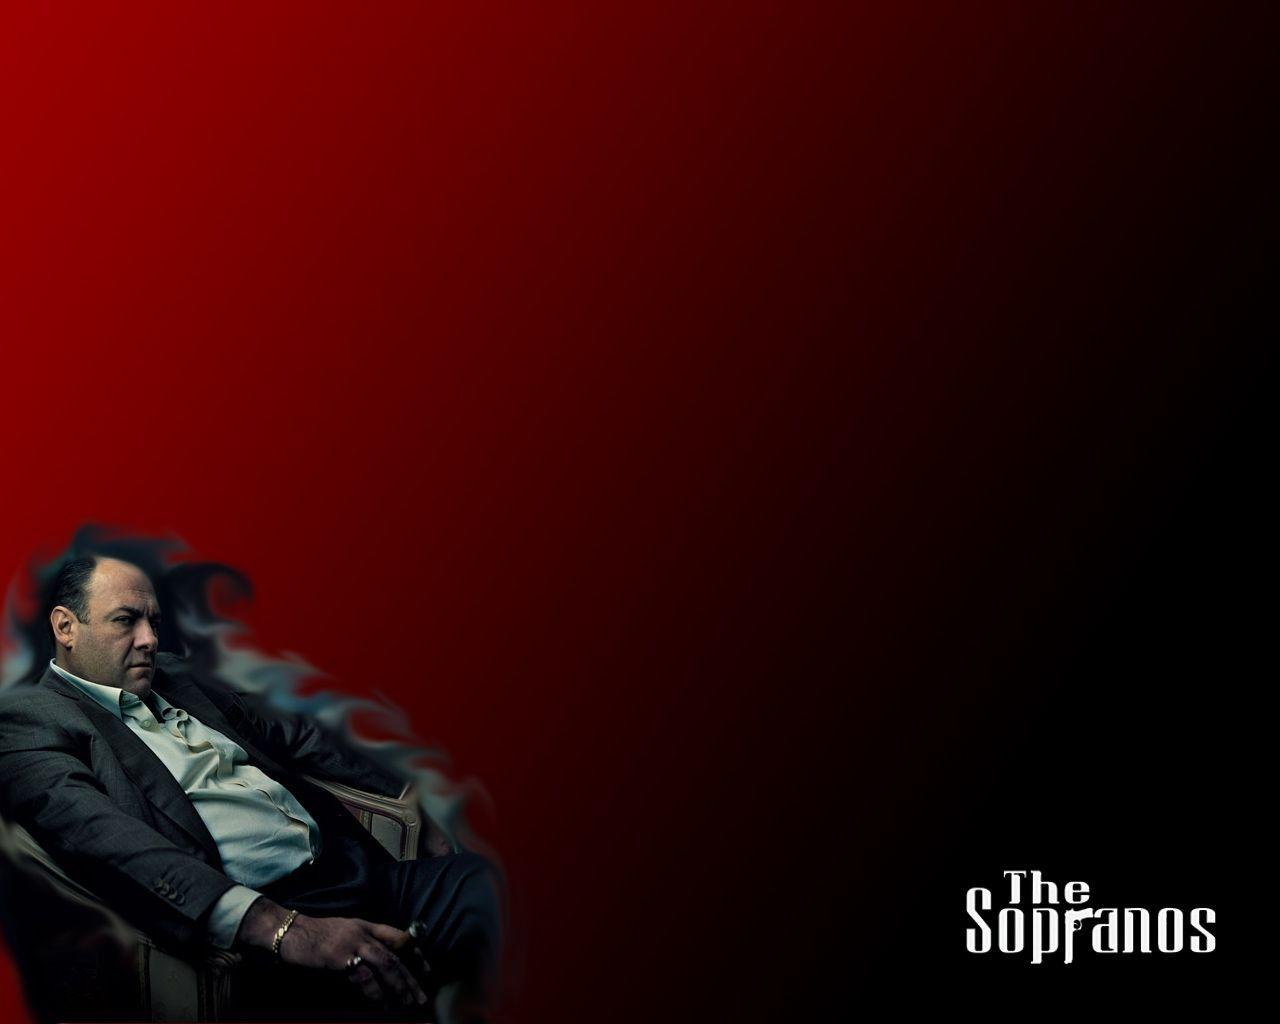 The Sopranos Wallpapers by Millsy96